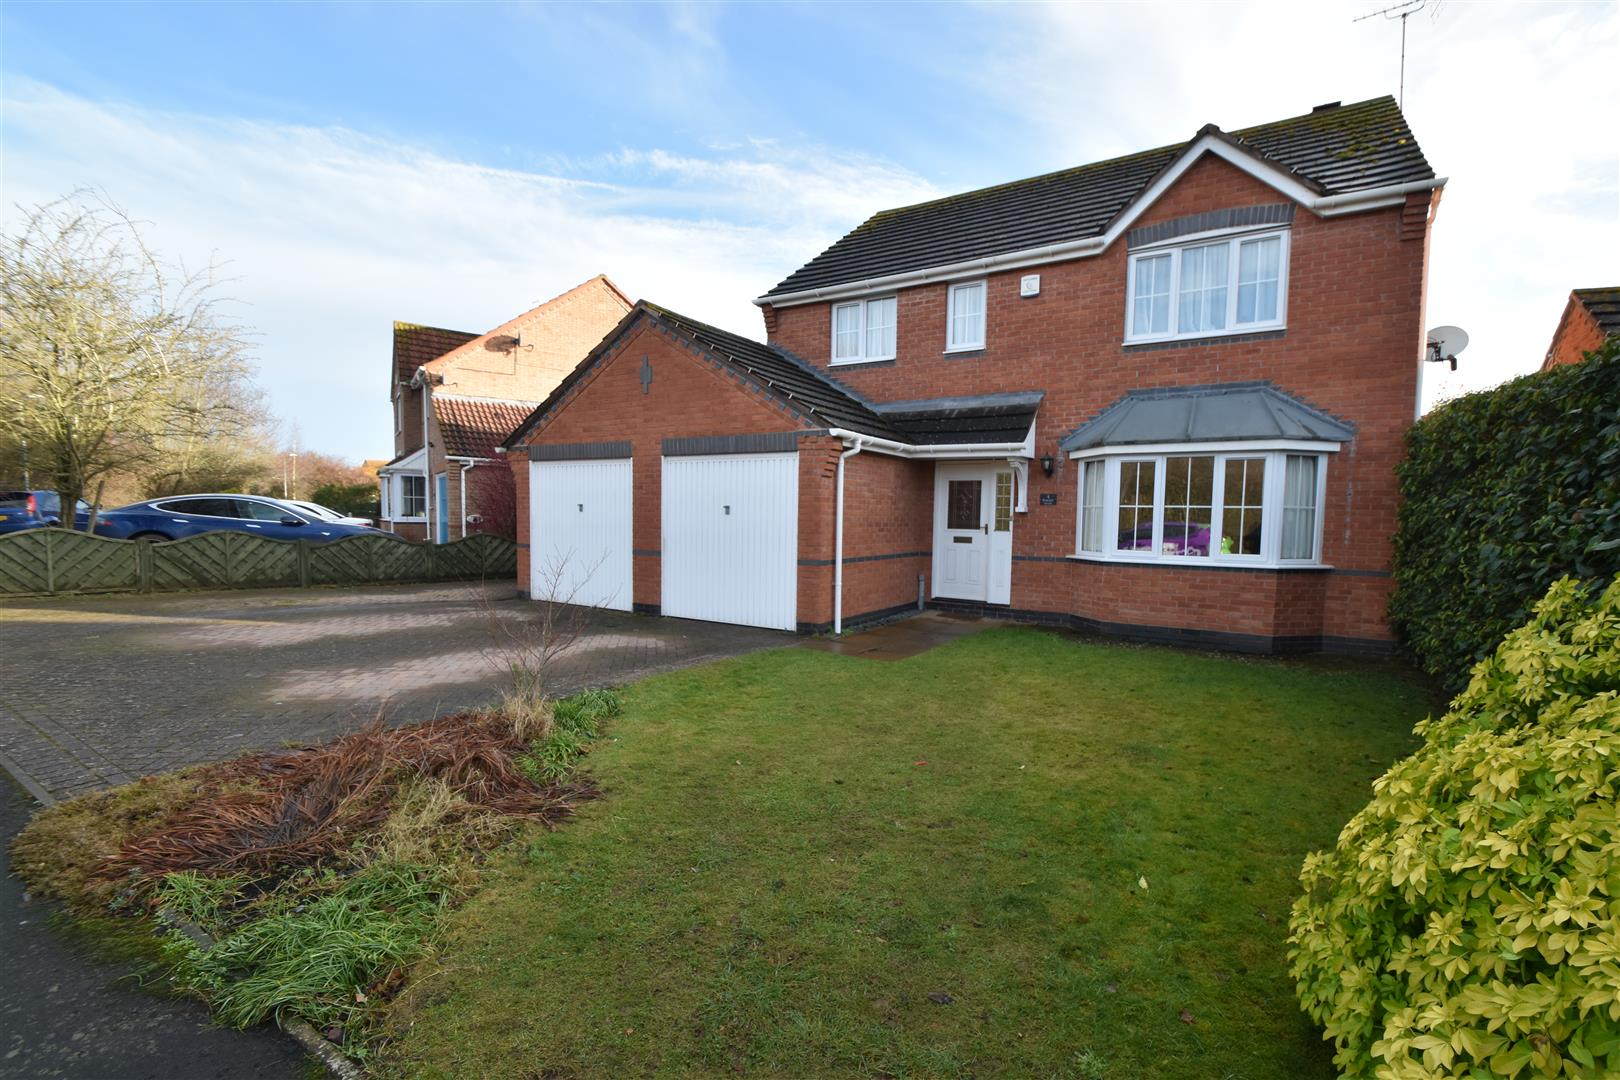 4 Bedrooms Detached House for sale in Bowden Green, Droitwich